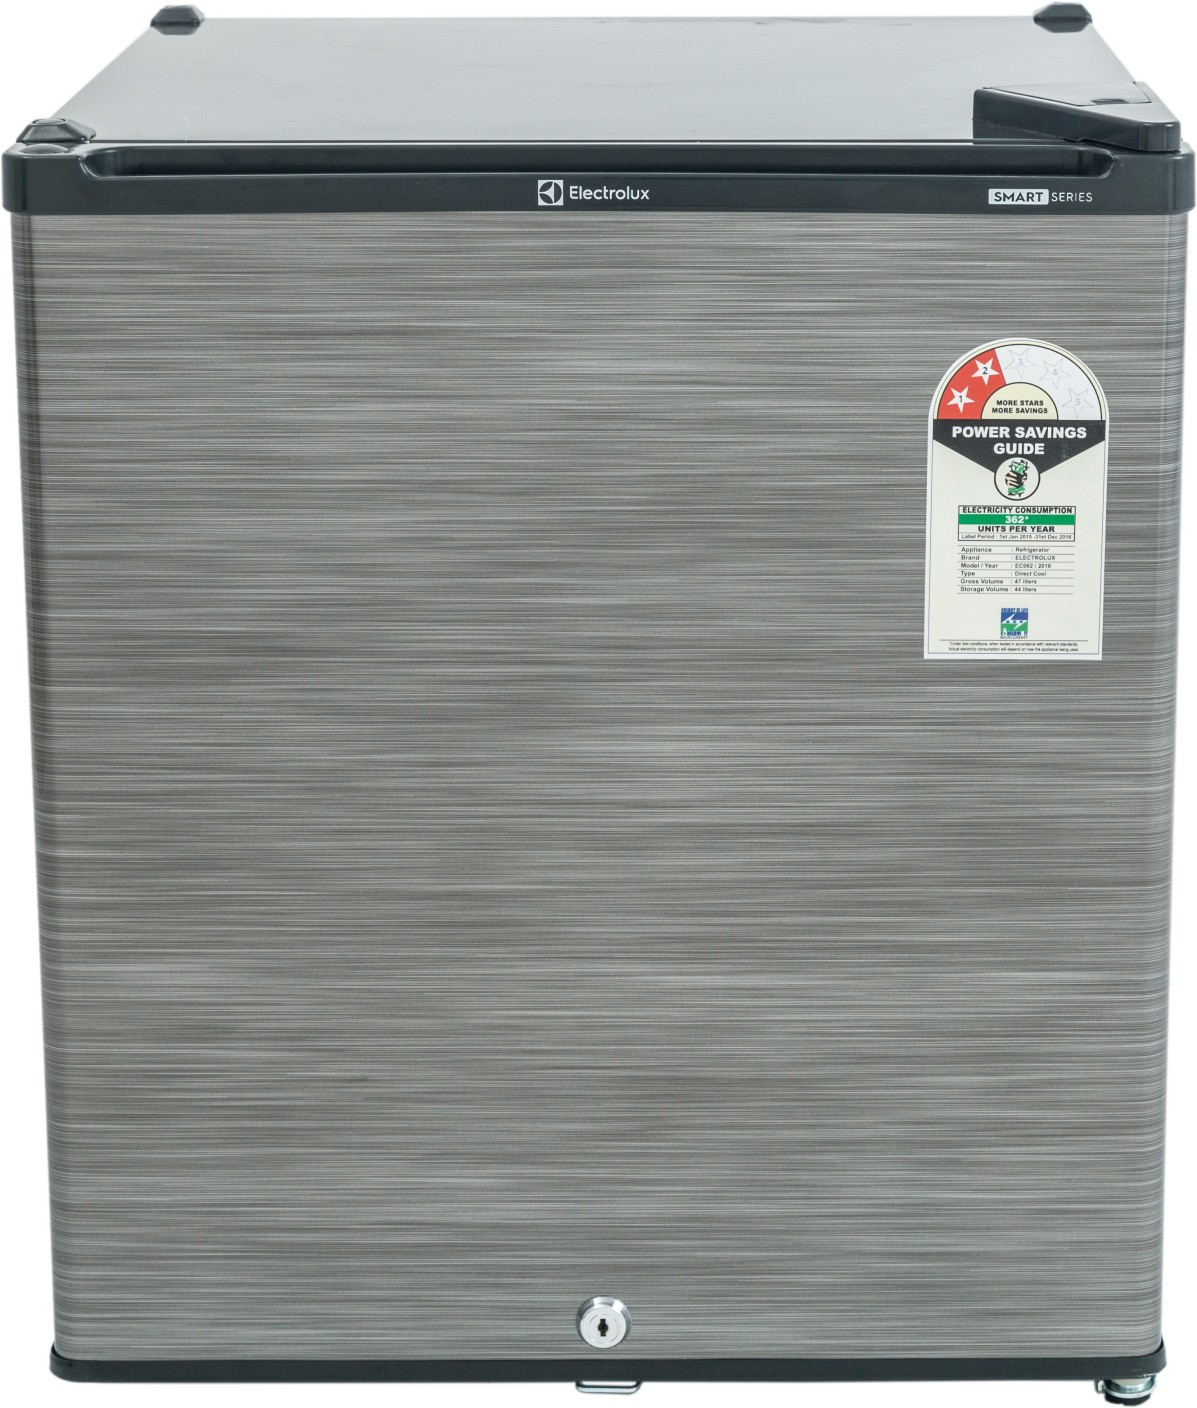 Electrolux 47 L Direct Cool Single Door Refrigerator